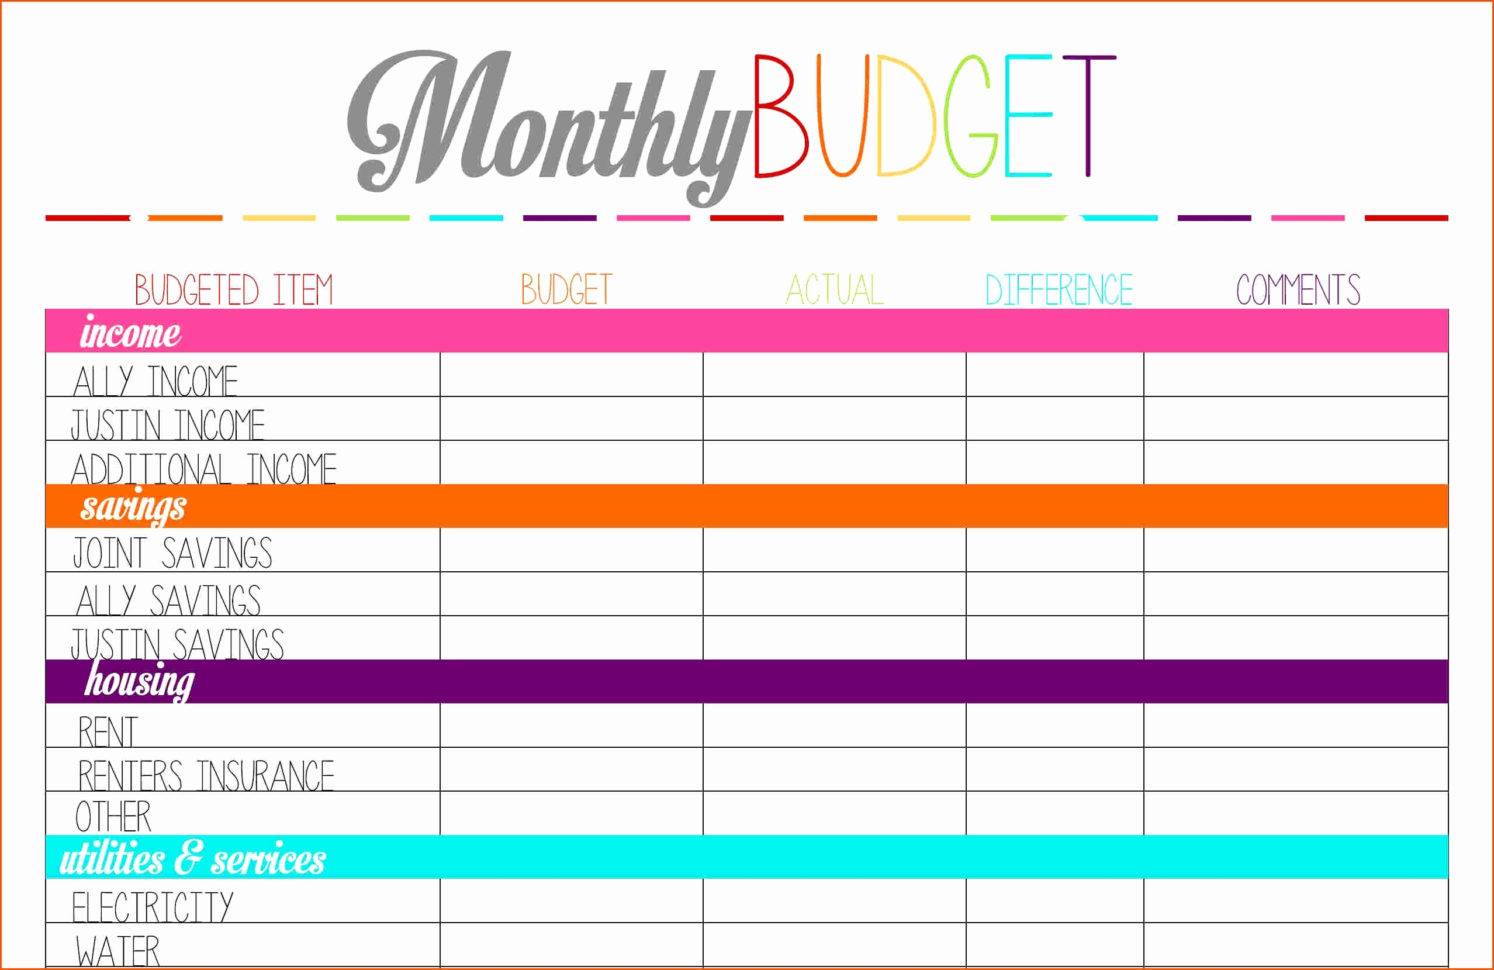 Dave Ramsey Budget Spreadsheet Excel Intended For Dave